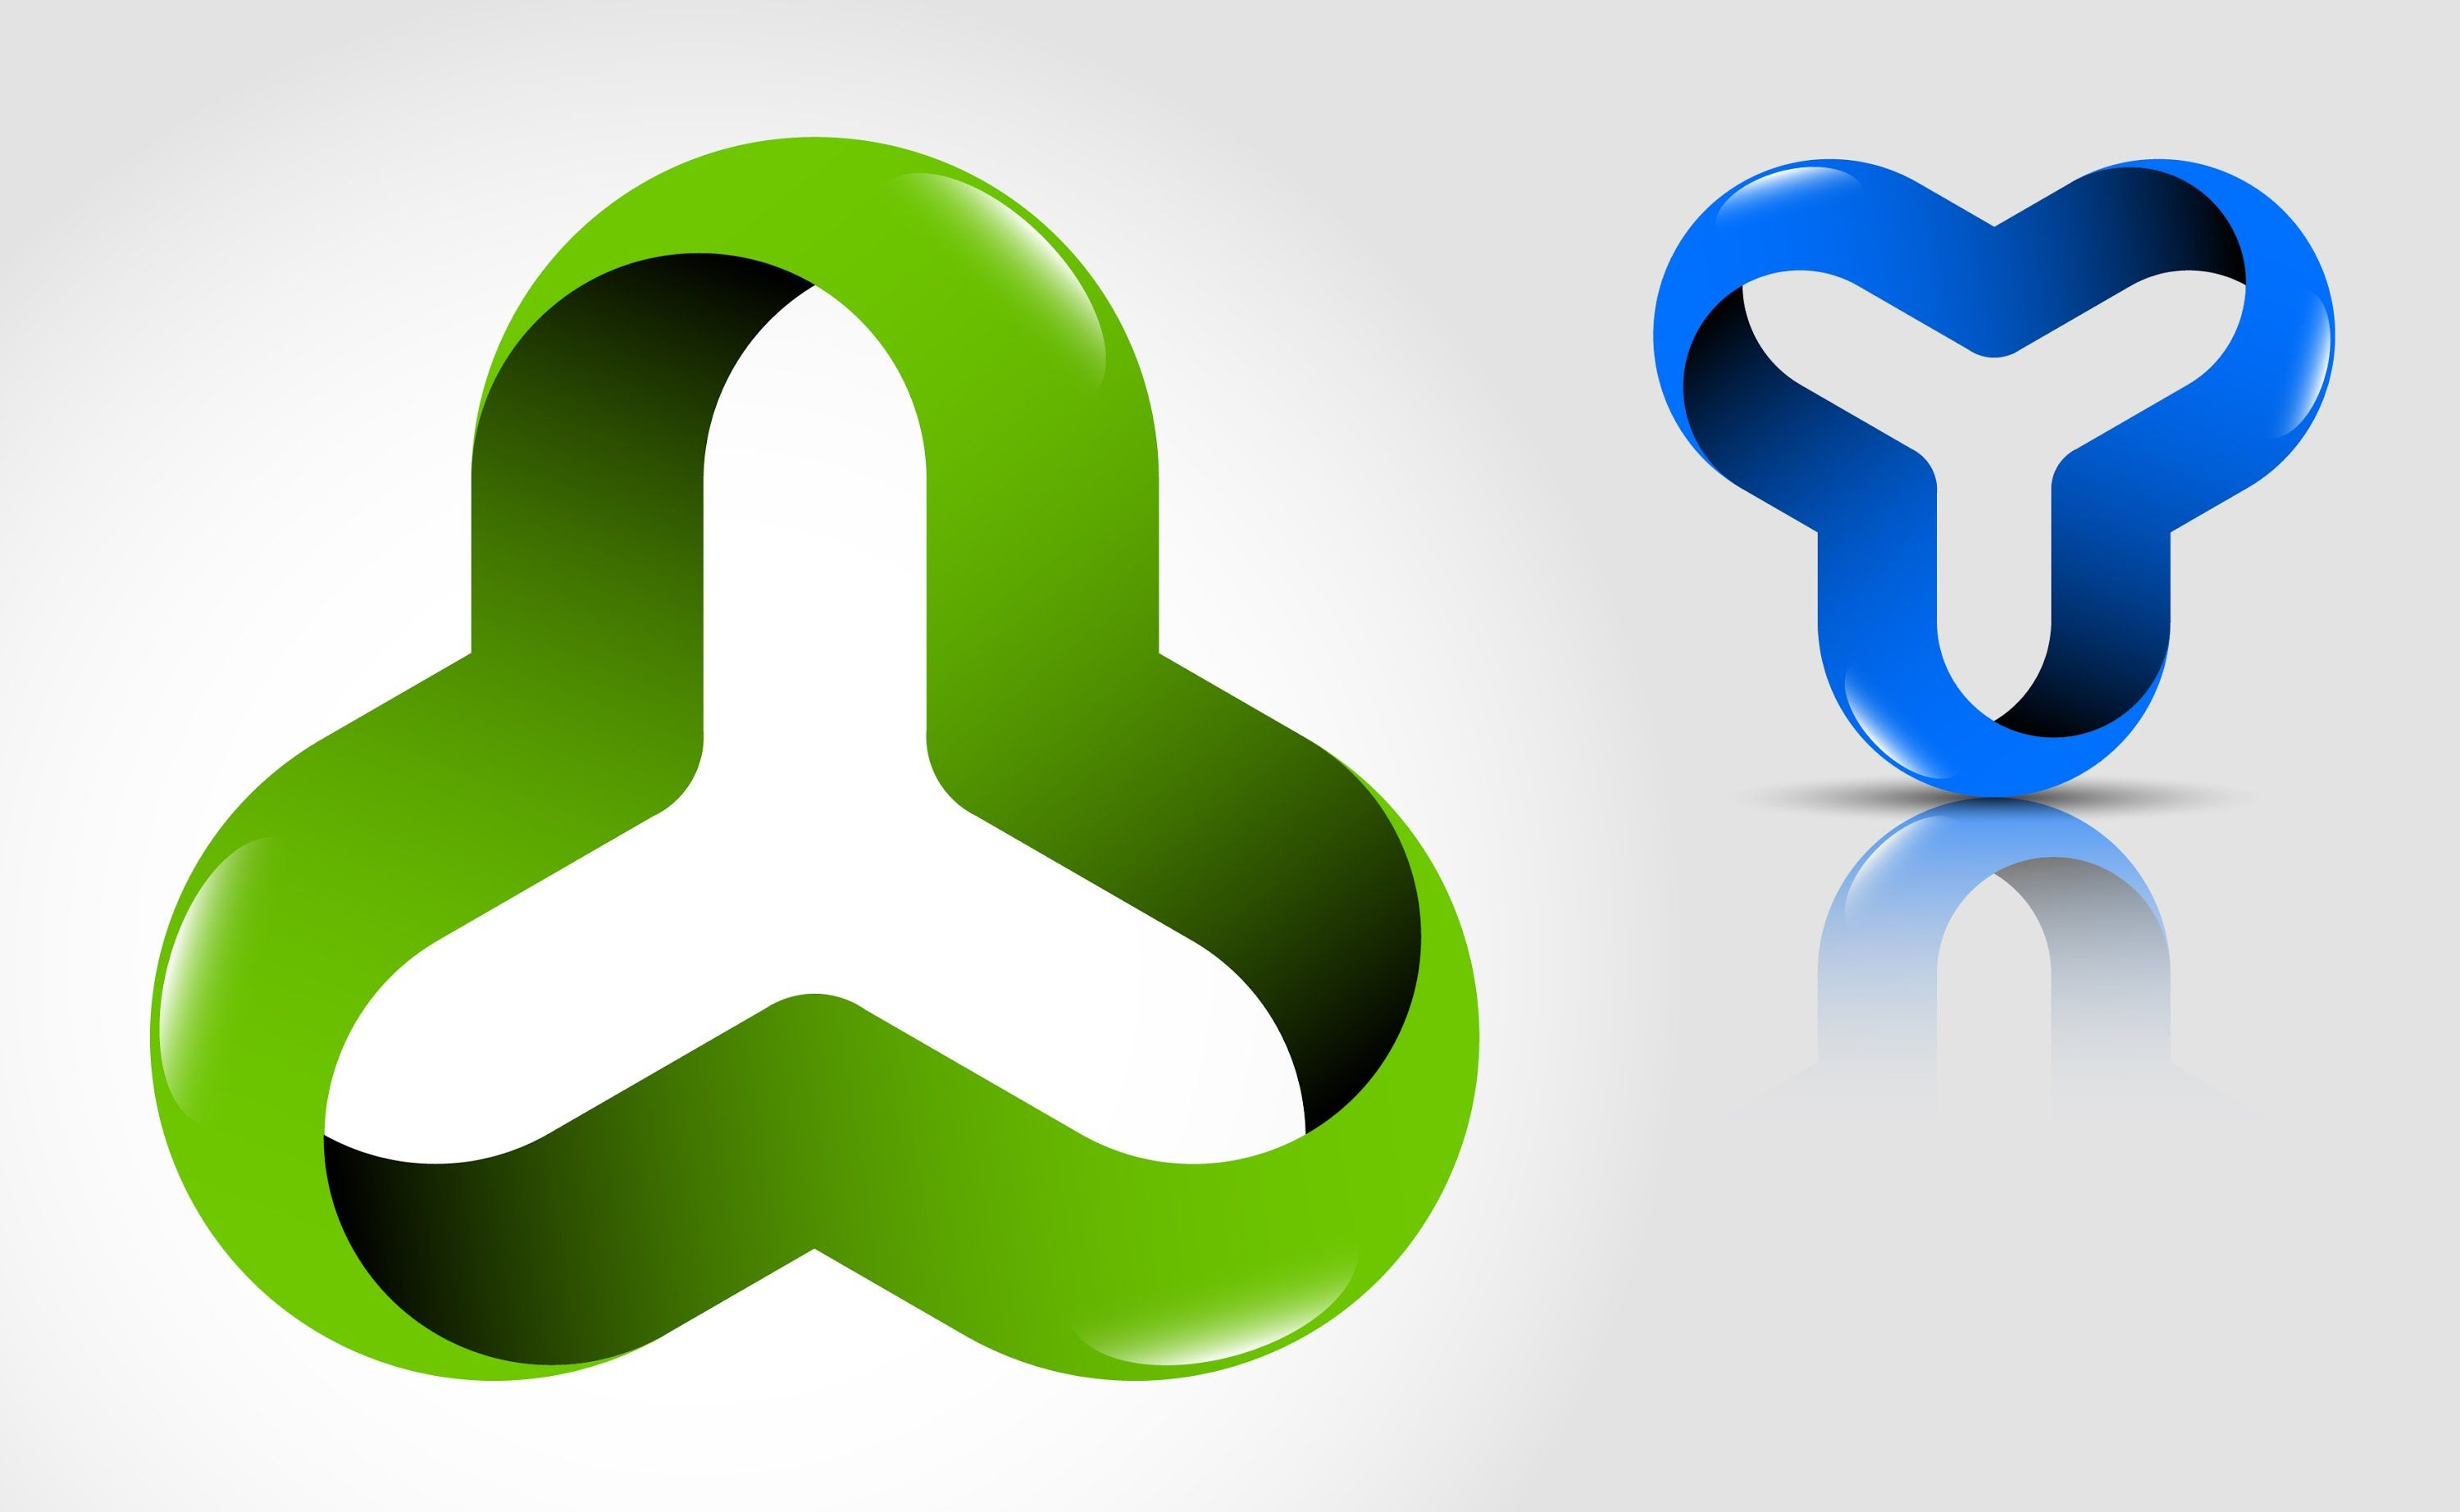 How to create 3D logo design (optical illusion) in Adobe